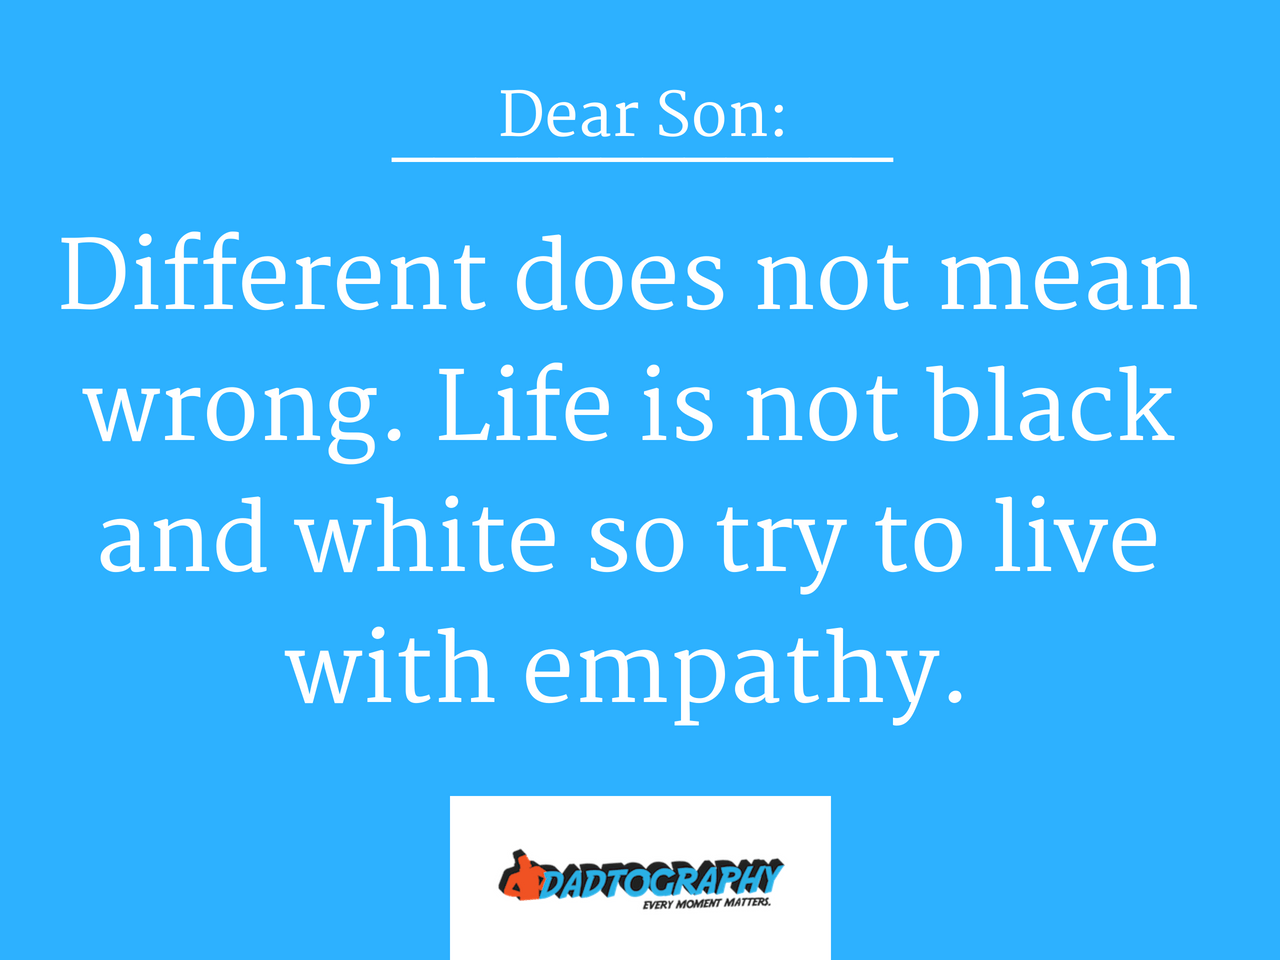 Dear Son Live Your Life With Empathy